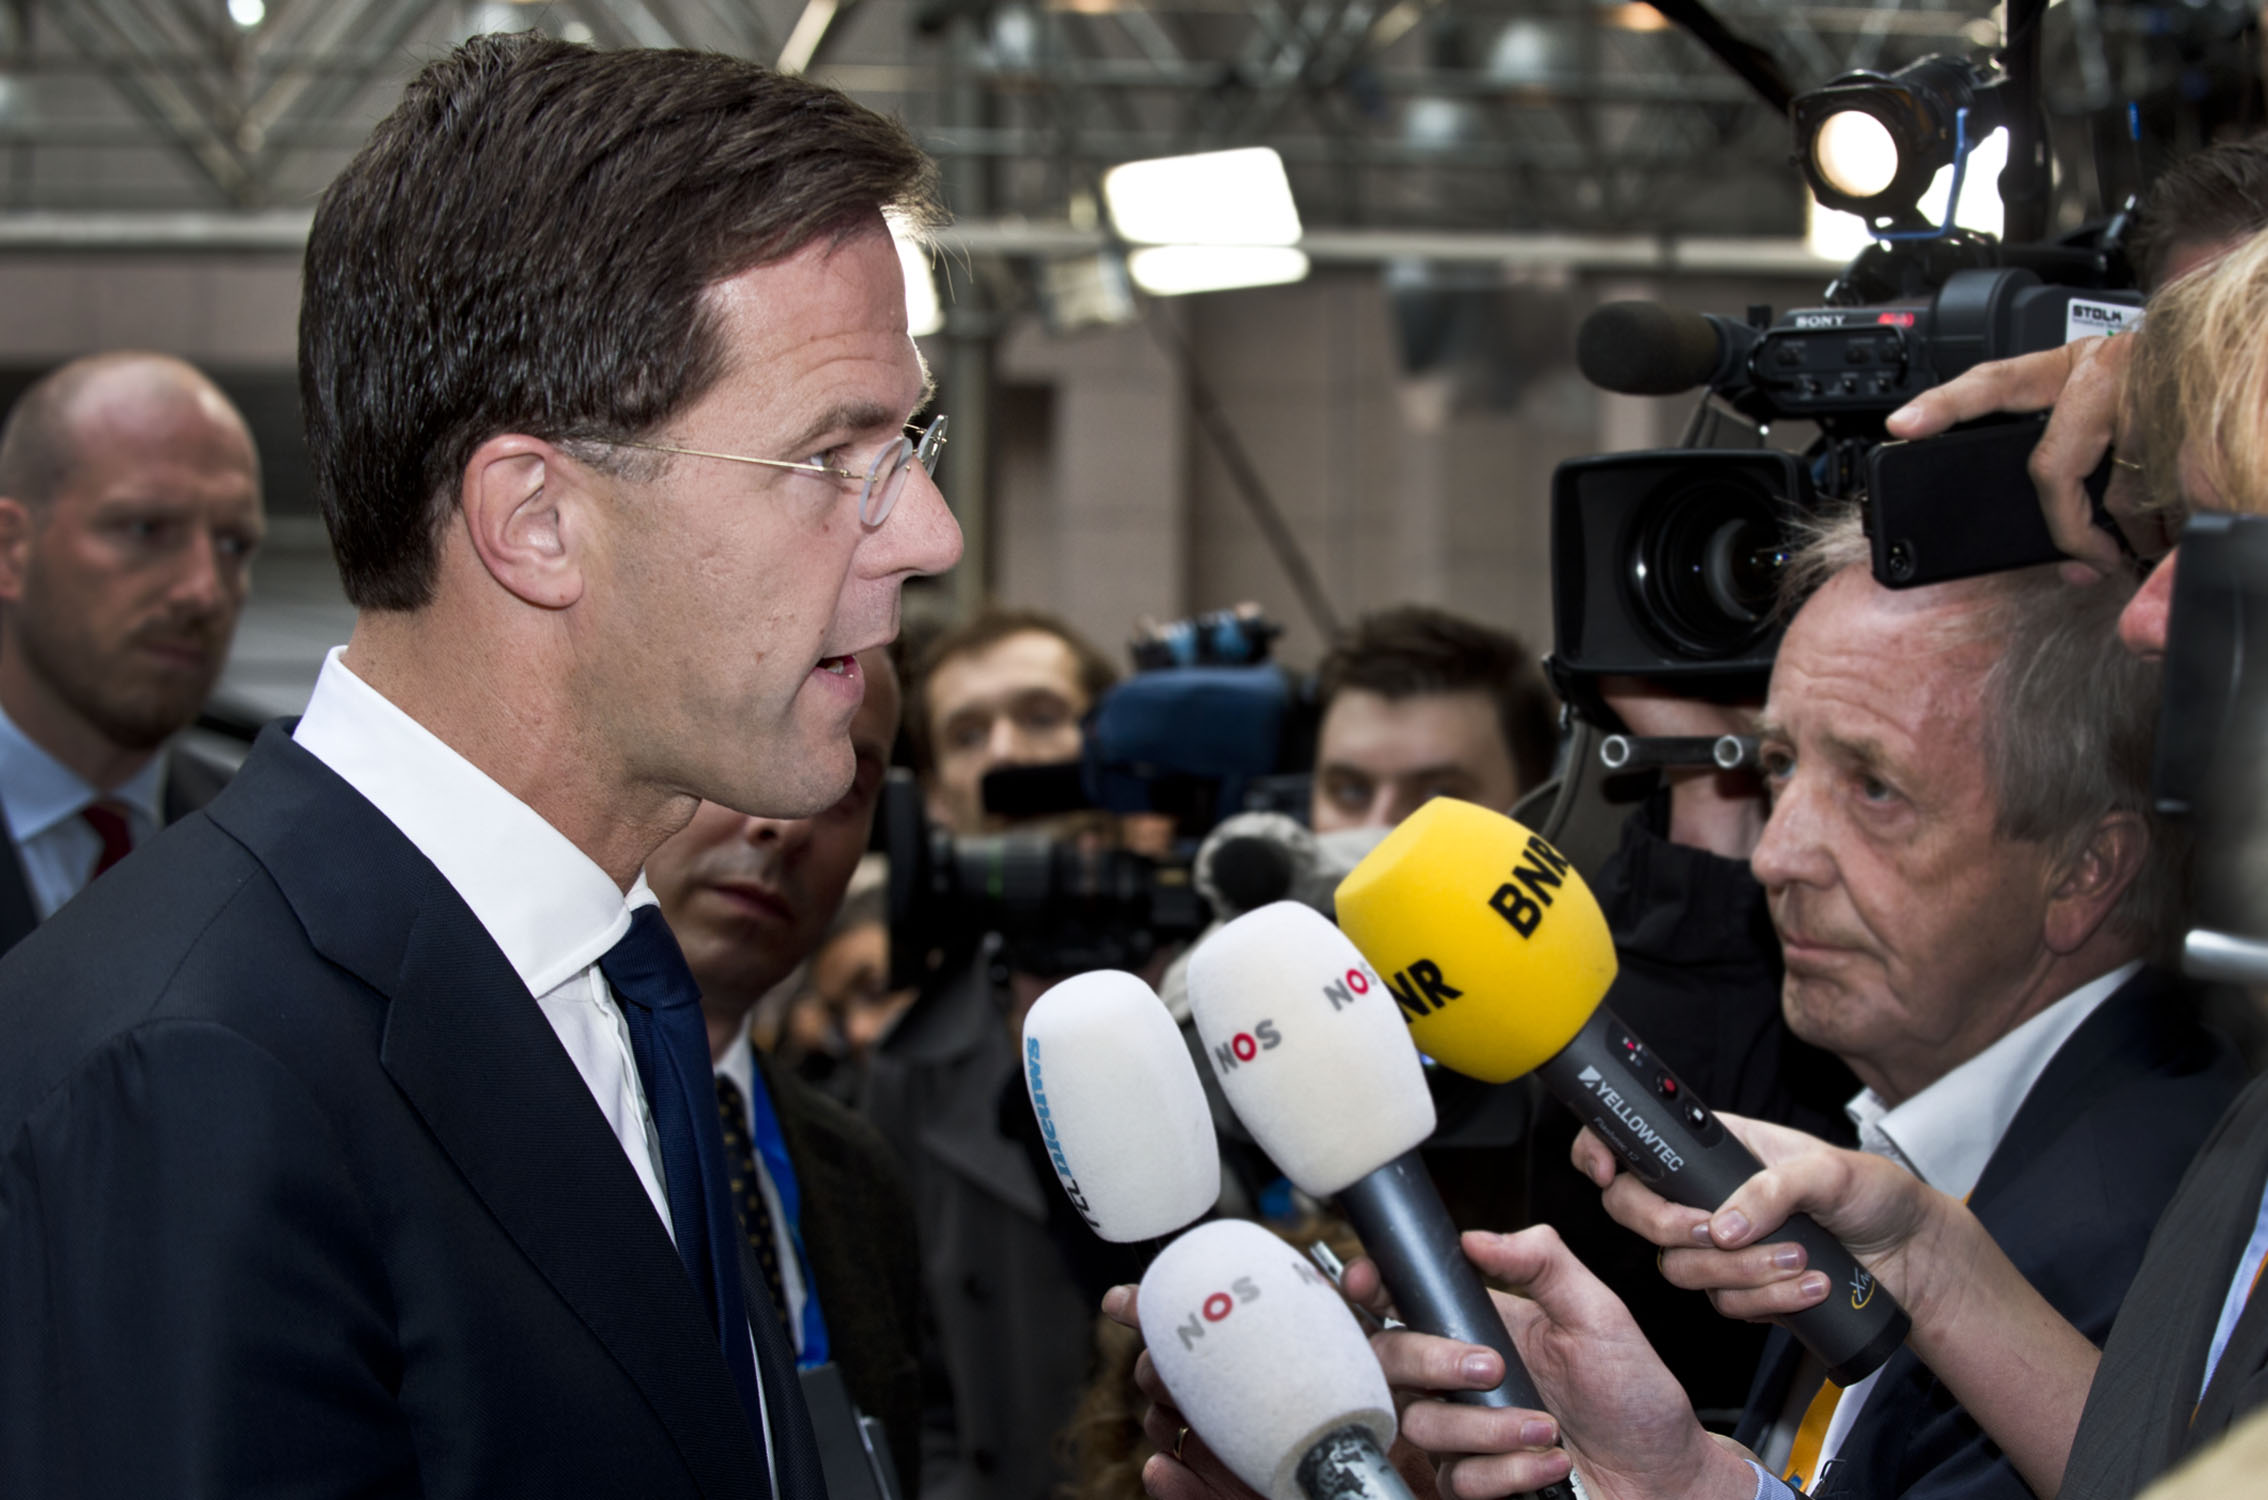 Mark Rutte staat de media te woord